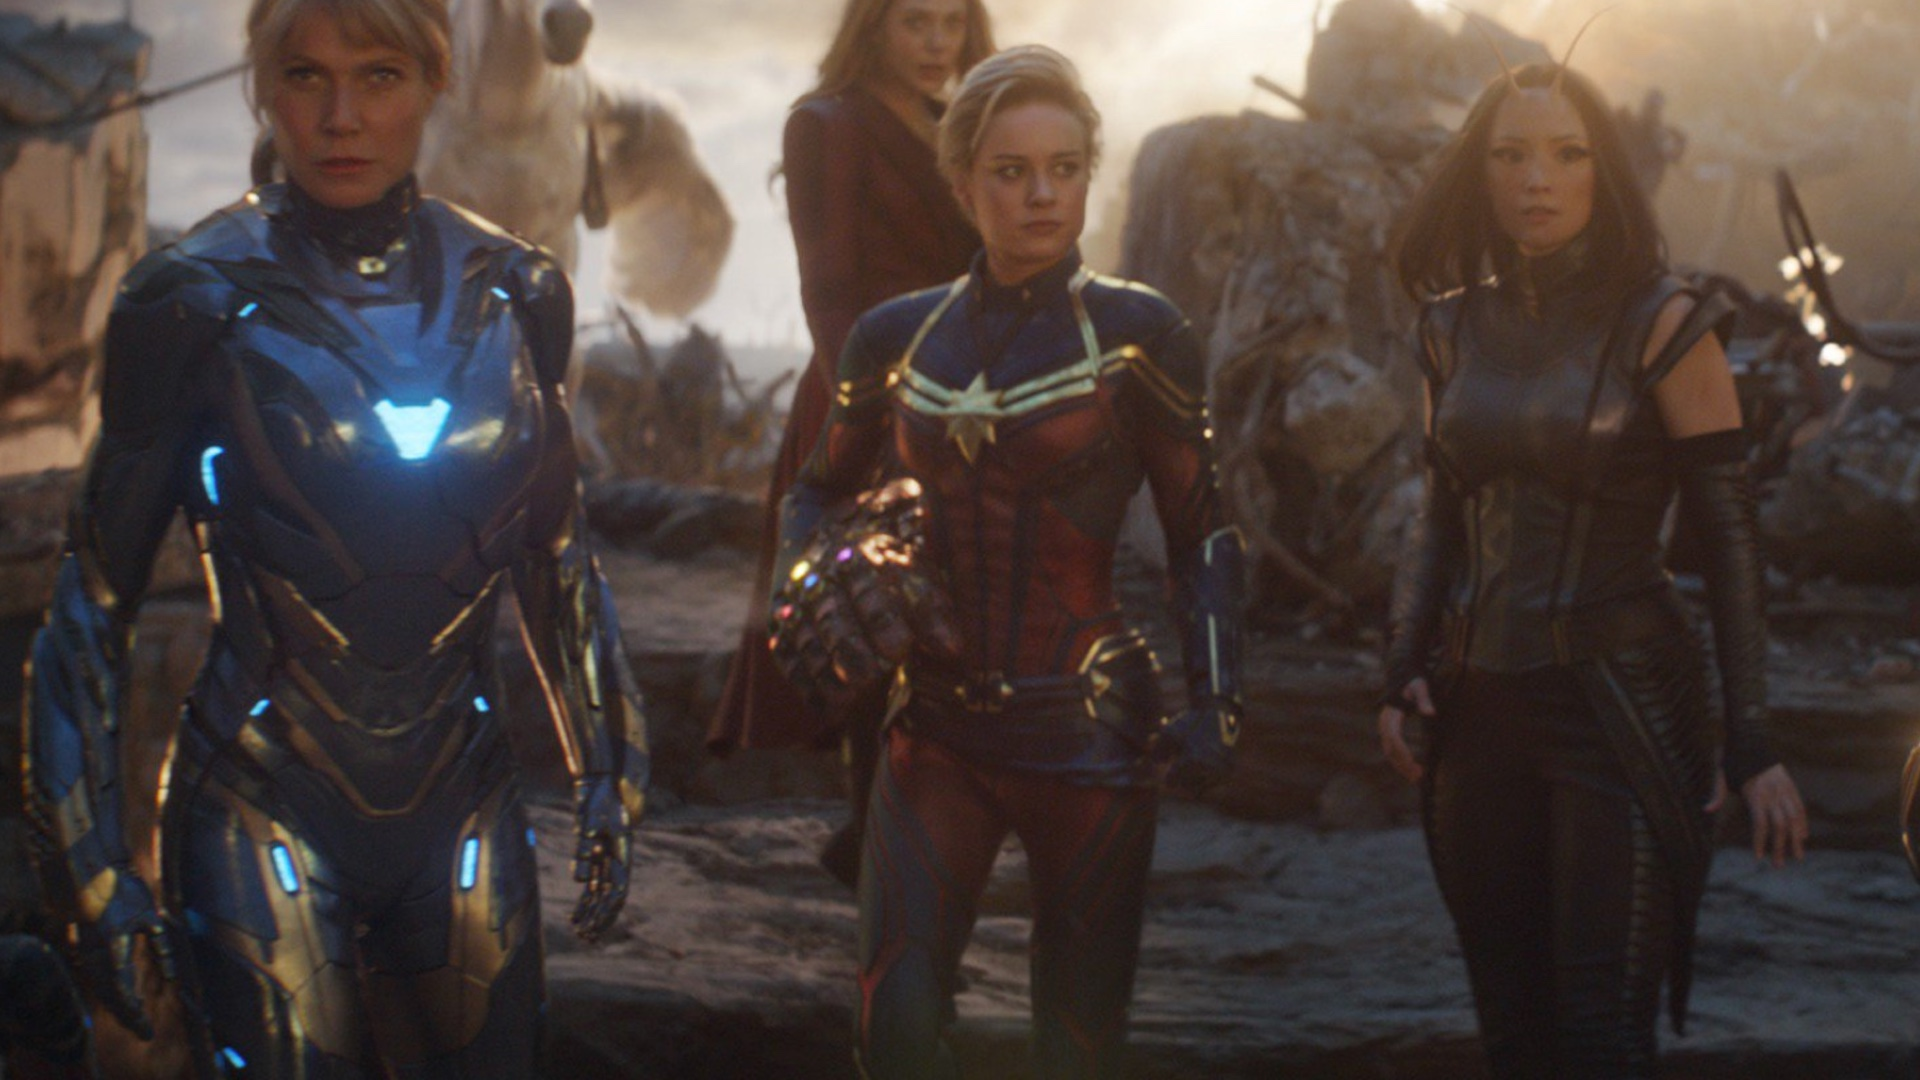 Captain Marvel S Suit Was Entirely Cgi In Avengers Endgame Geektyrant People are talking about captain marvel's haircut in avengers: entirely cgi in avengers endgame